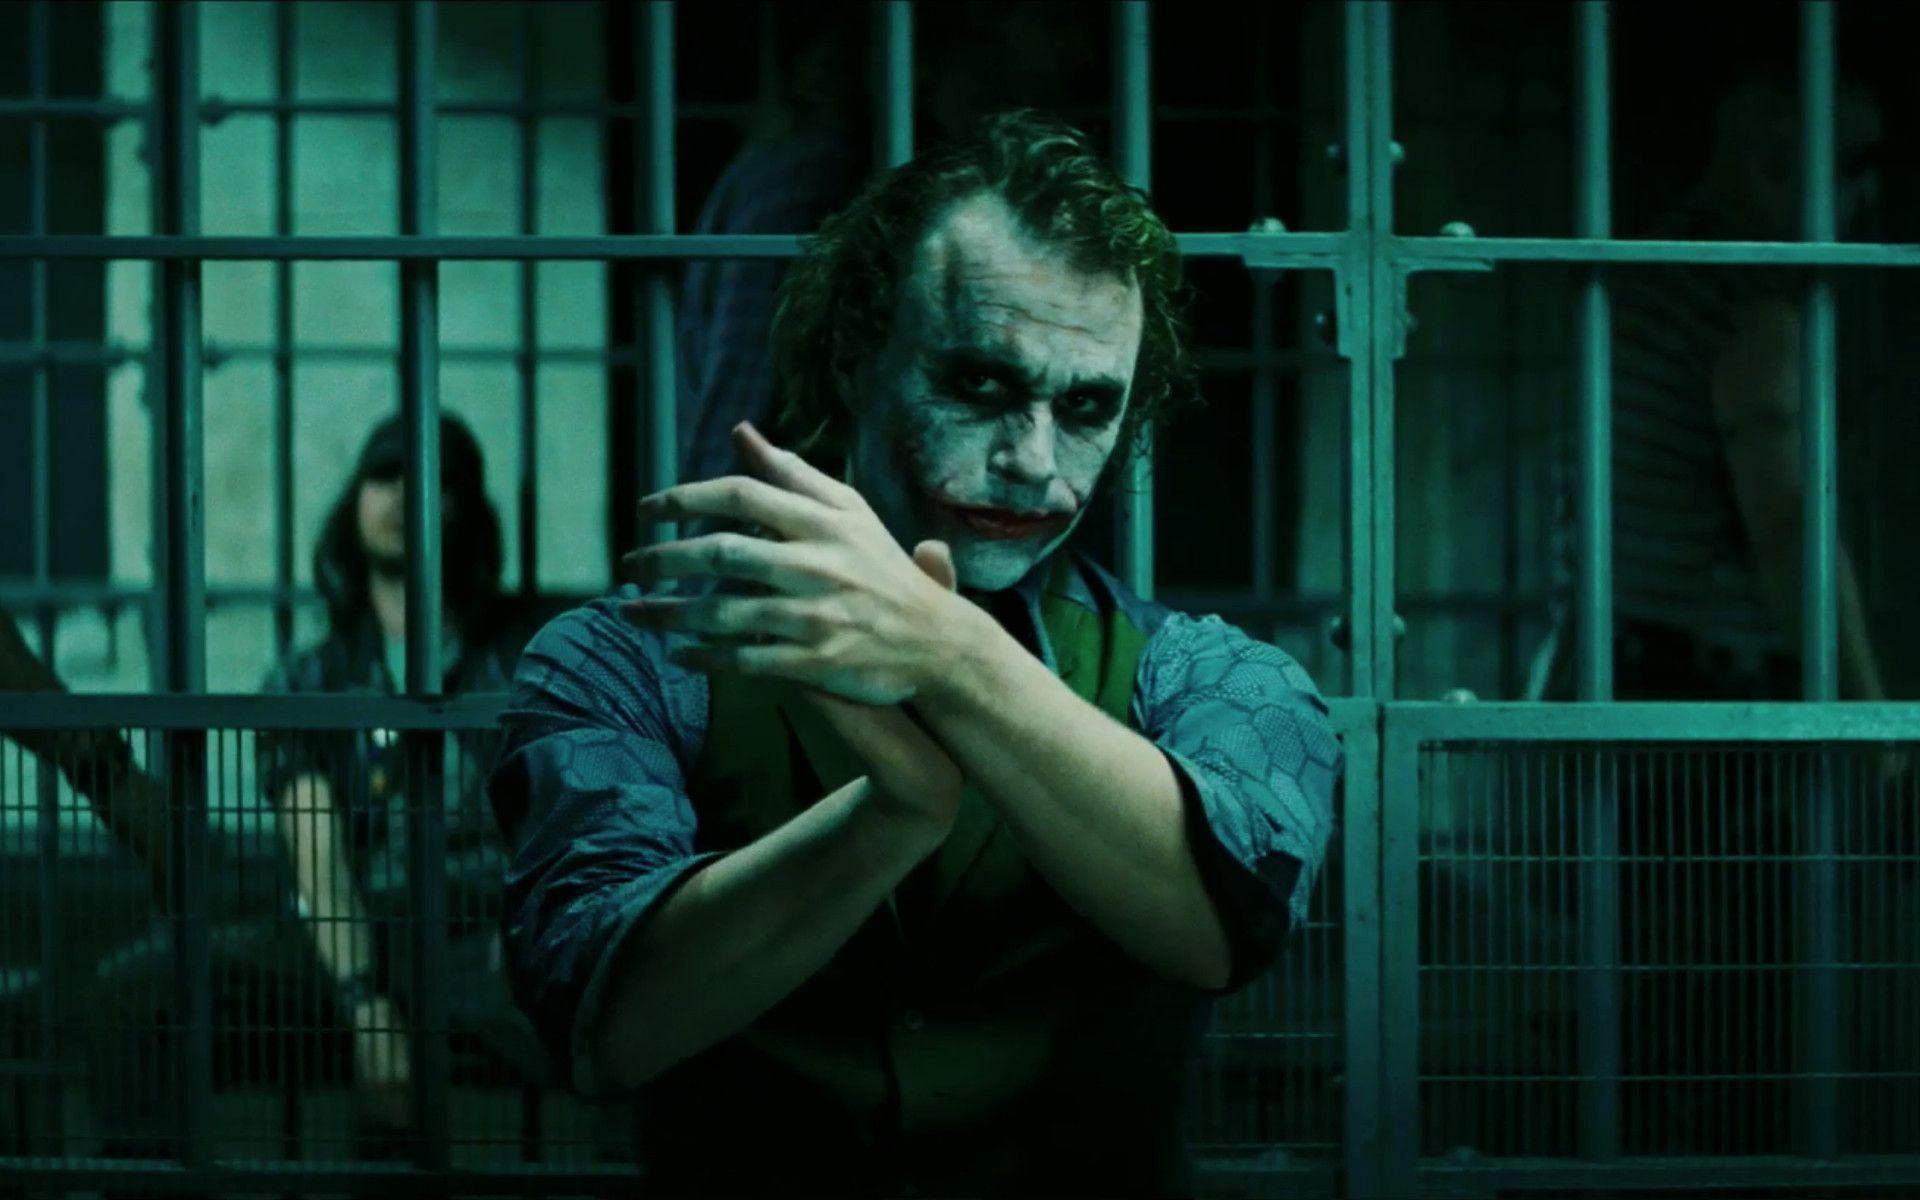 Joker Wallpapers - Full HD wallpaper search - page 9